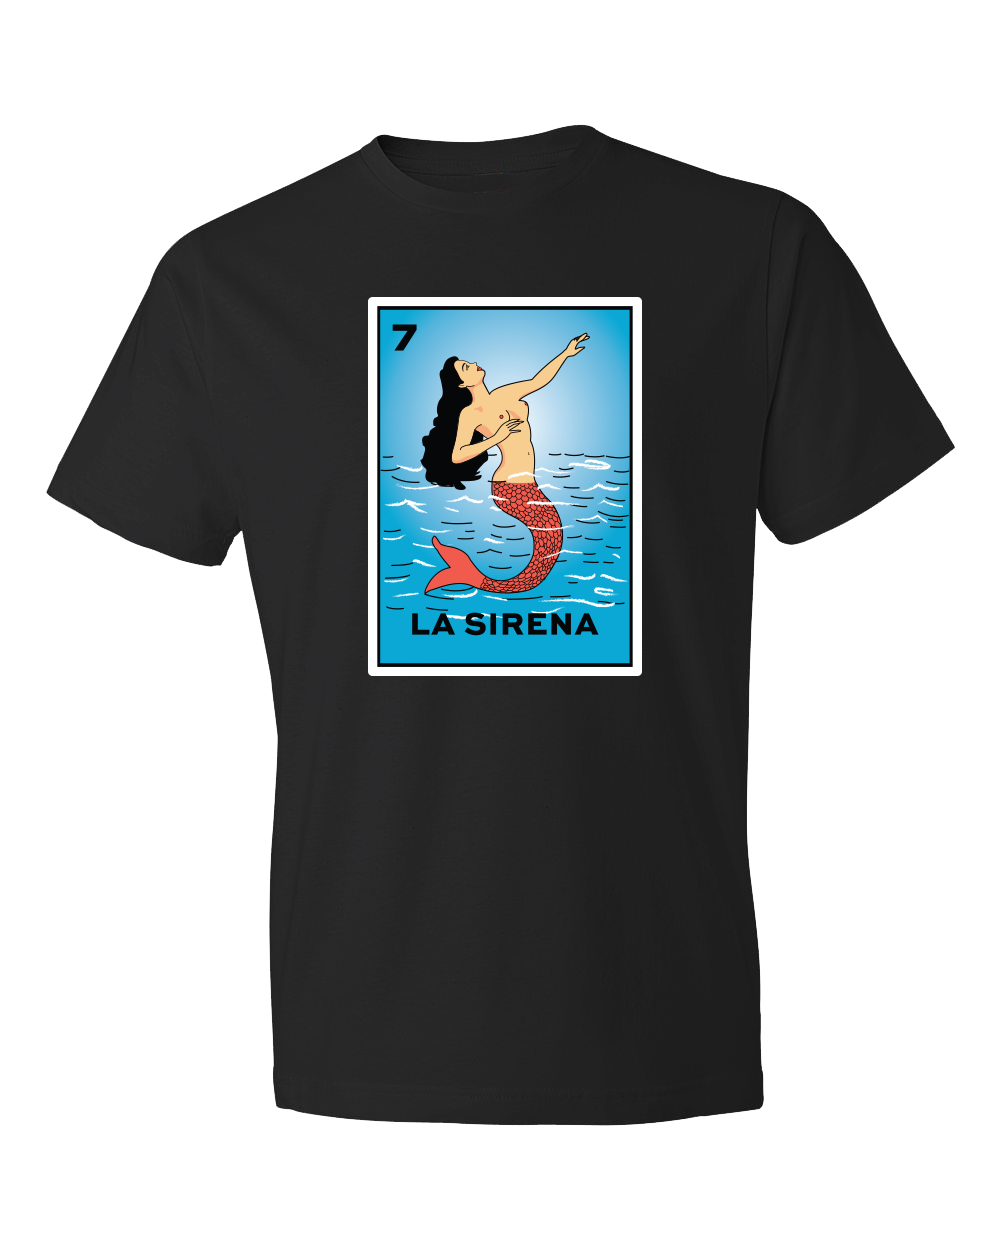 Black solid t shirt with La Sirena and a mermaid coming out of water on a card from the classic Loteria game blue and red